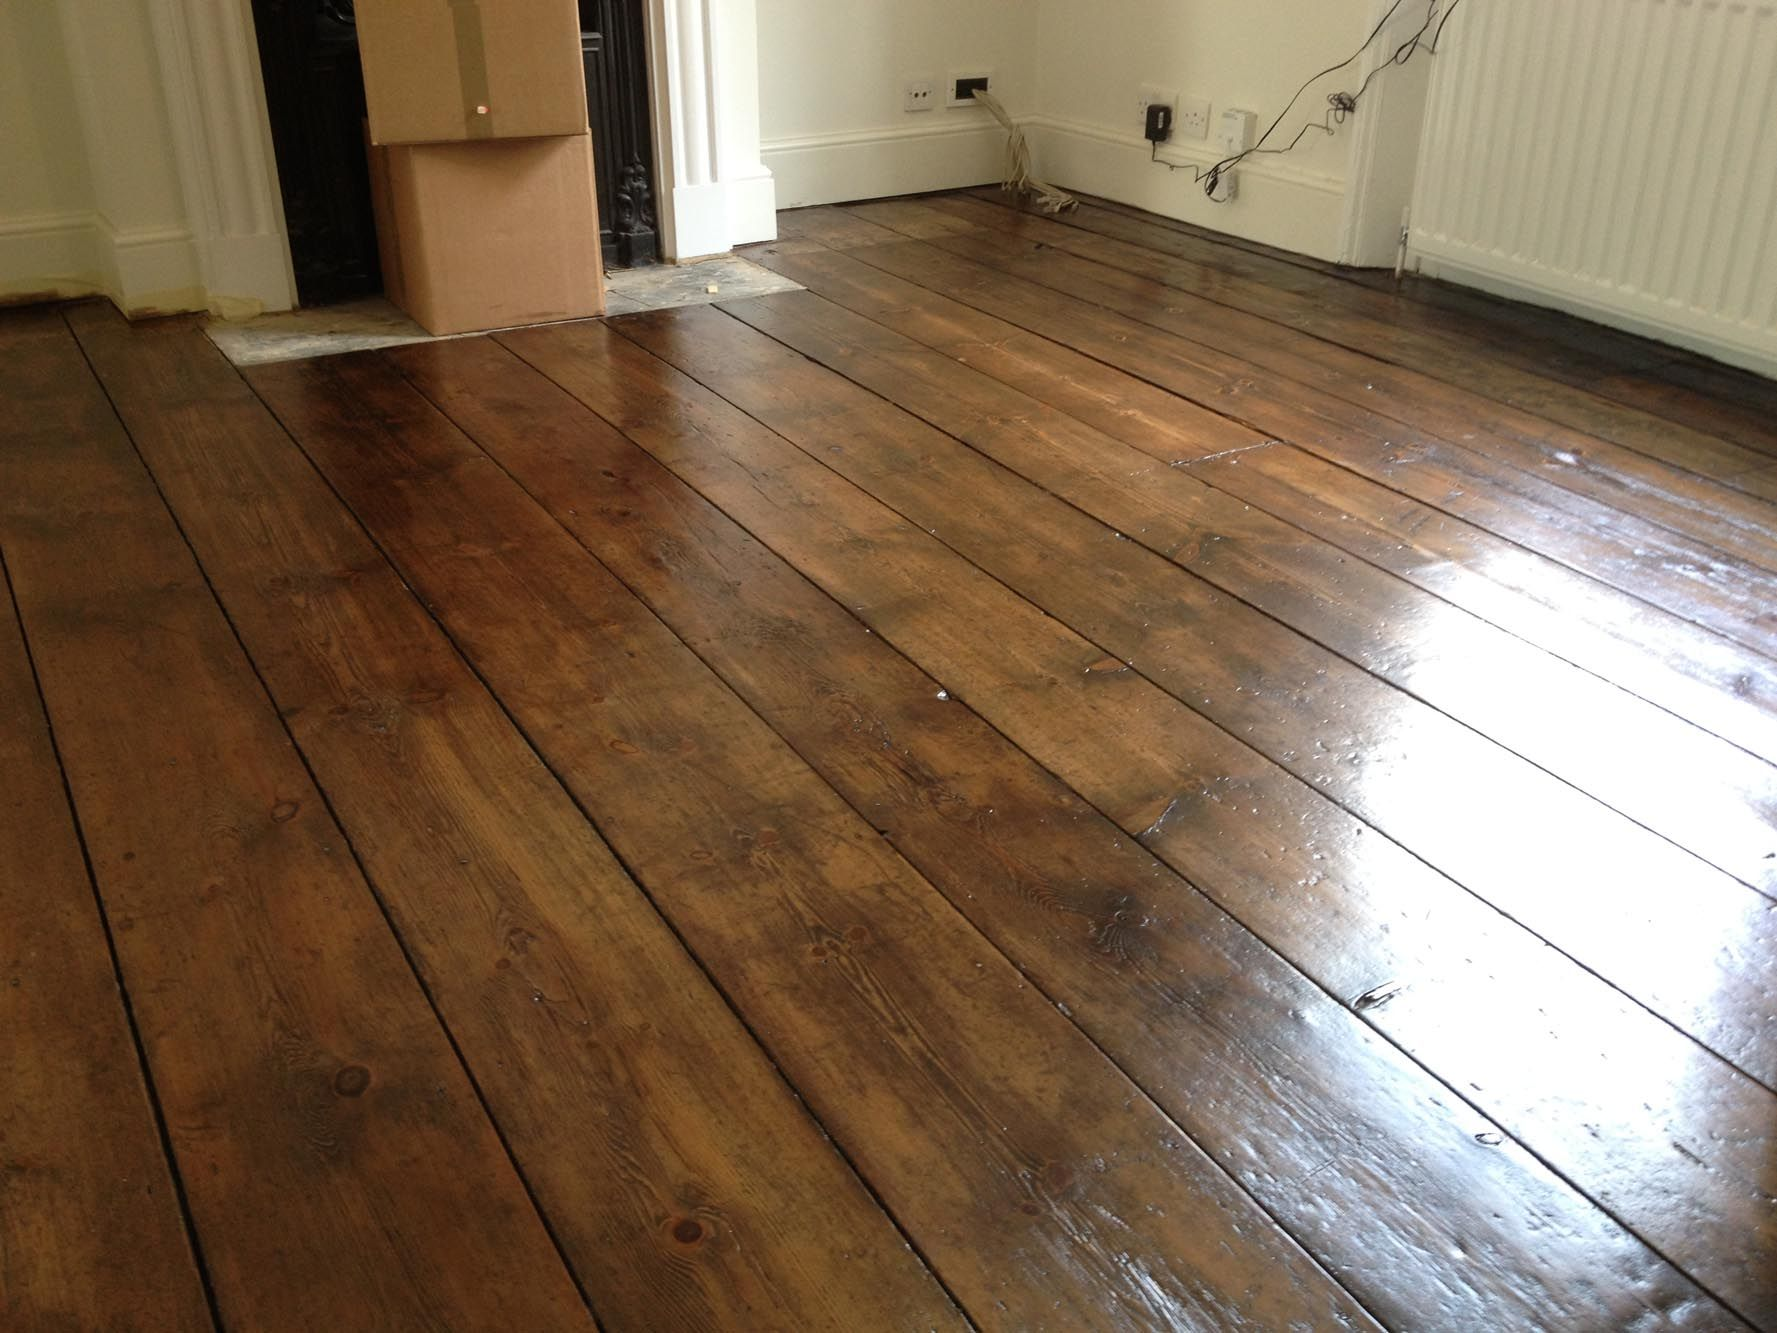 a restored pine floor (With images) Wooden